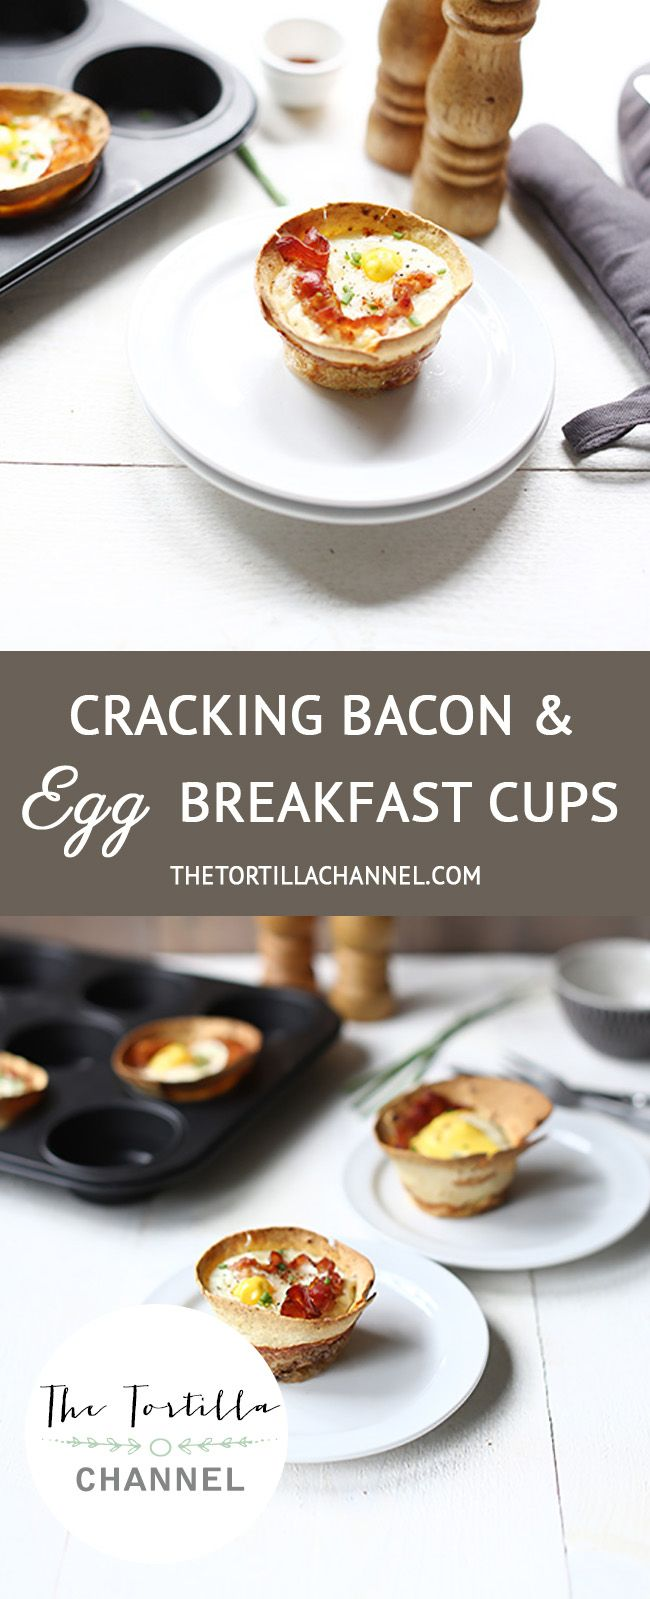 We are making cracking bacon and egg breakfast tortilla cups. You need 3 ingredients tortilla, bacon and eggs. The oven will do the rest. #healthy #thetortillachannel